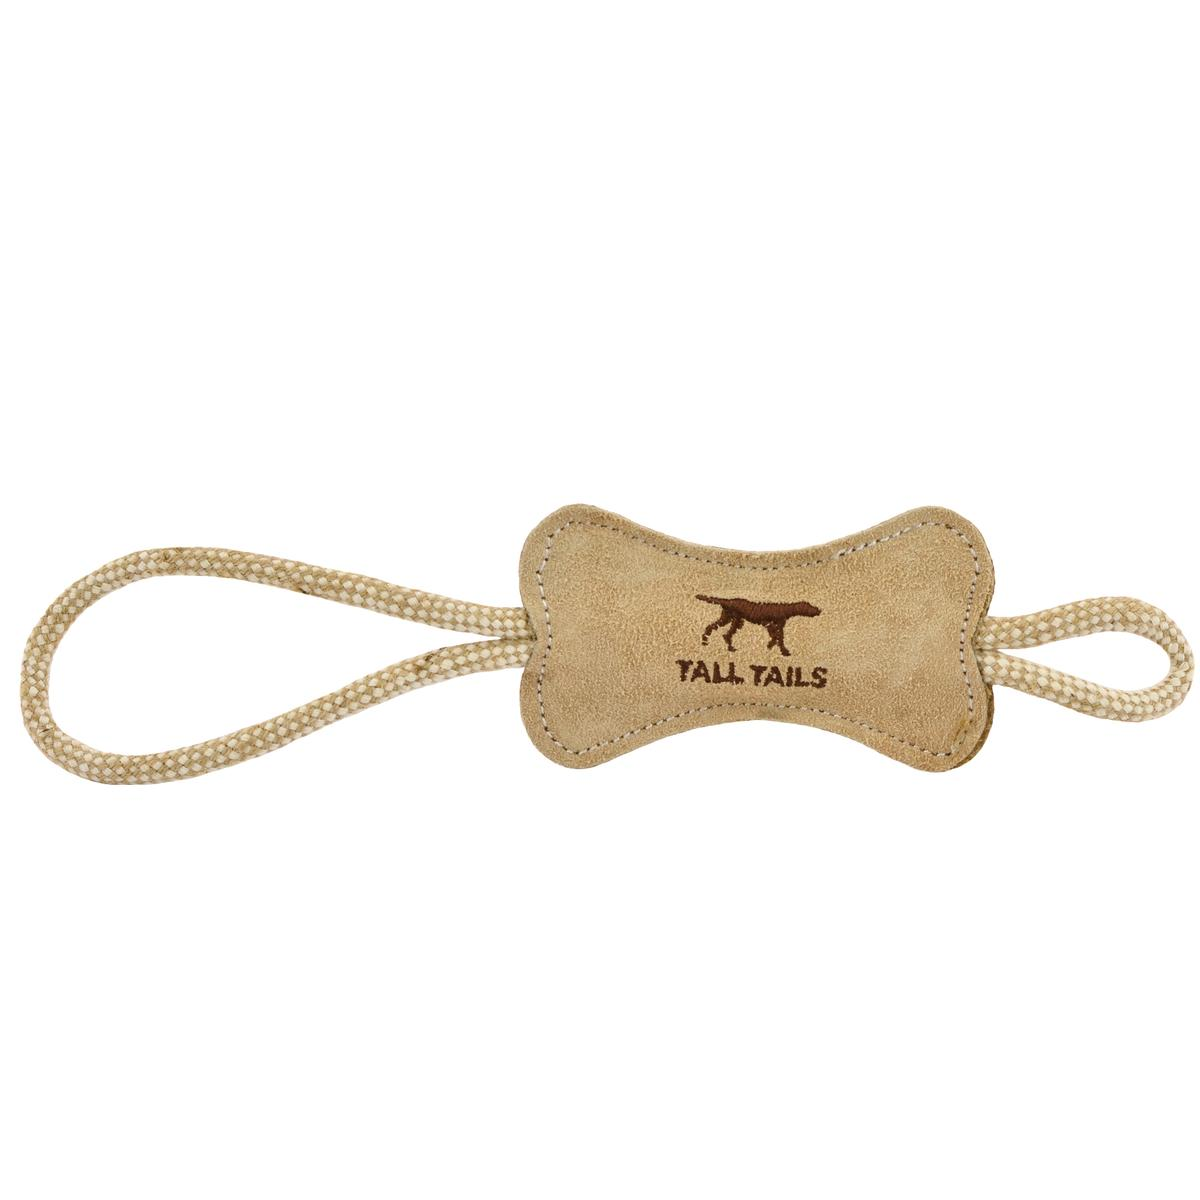 Tall Tails Natural Leather Bone Tug Dog Toy